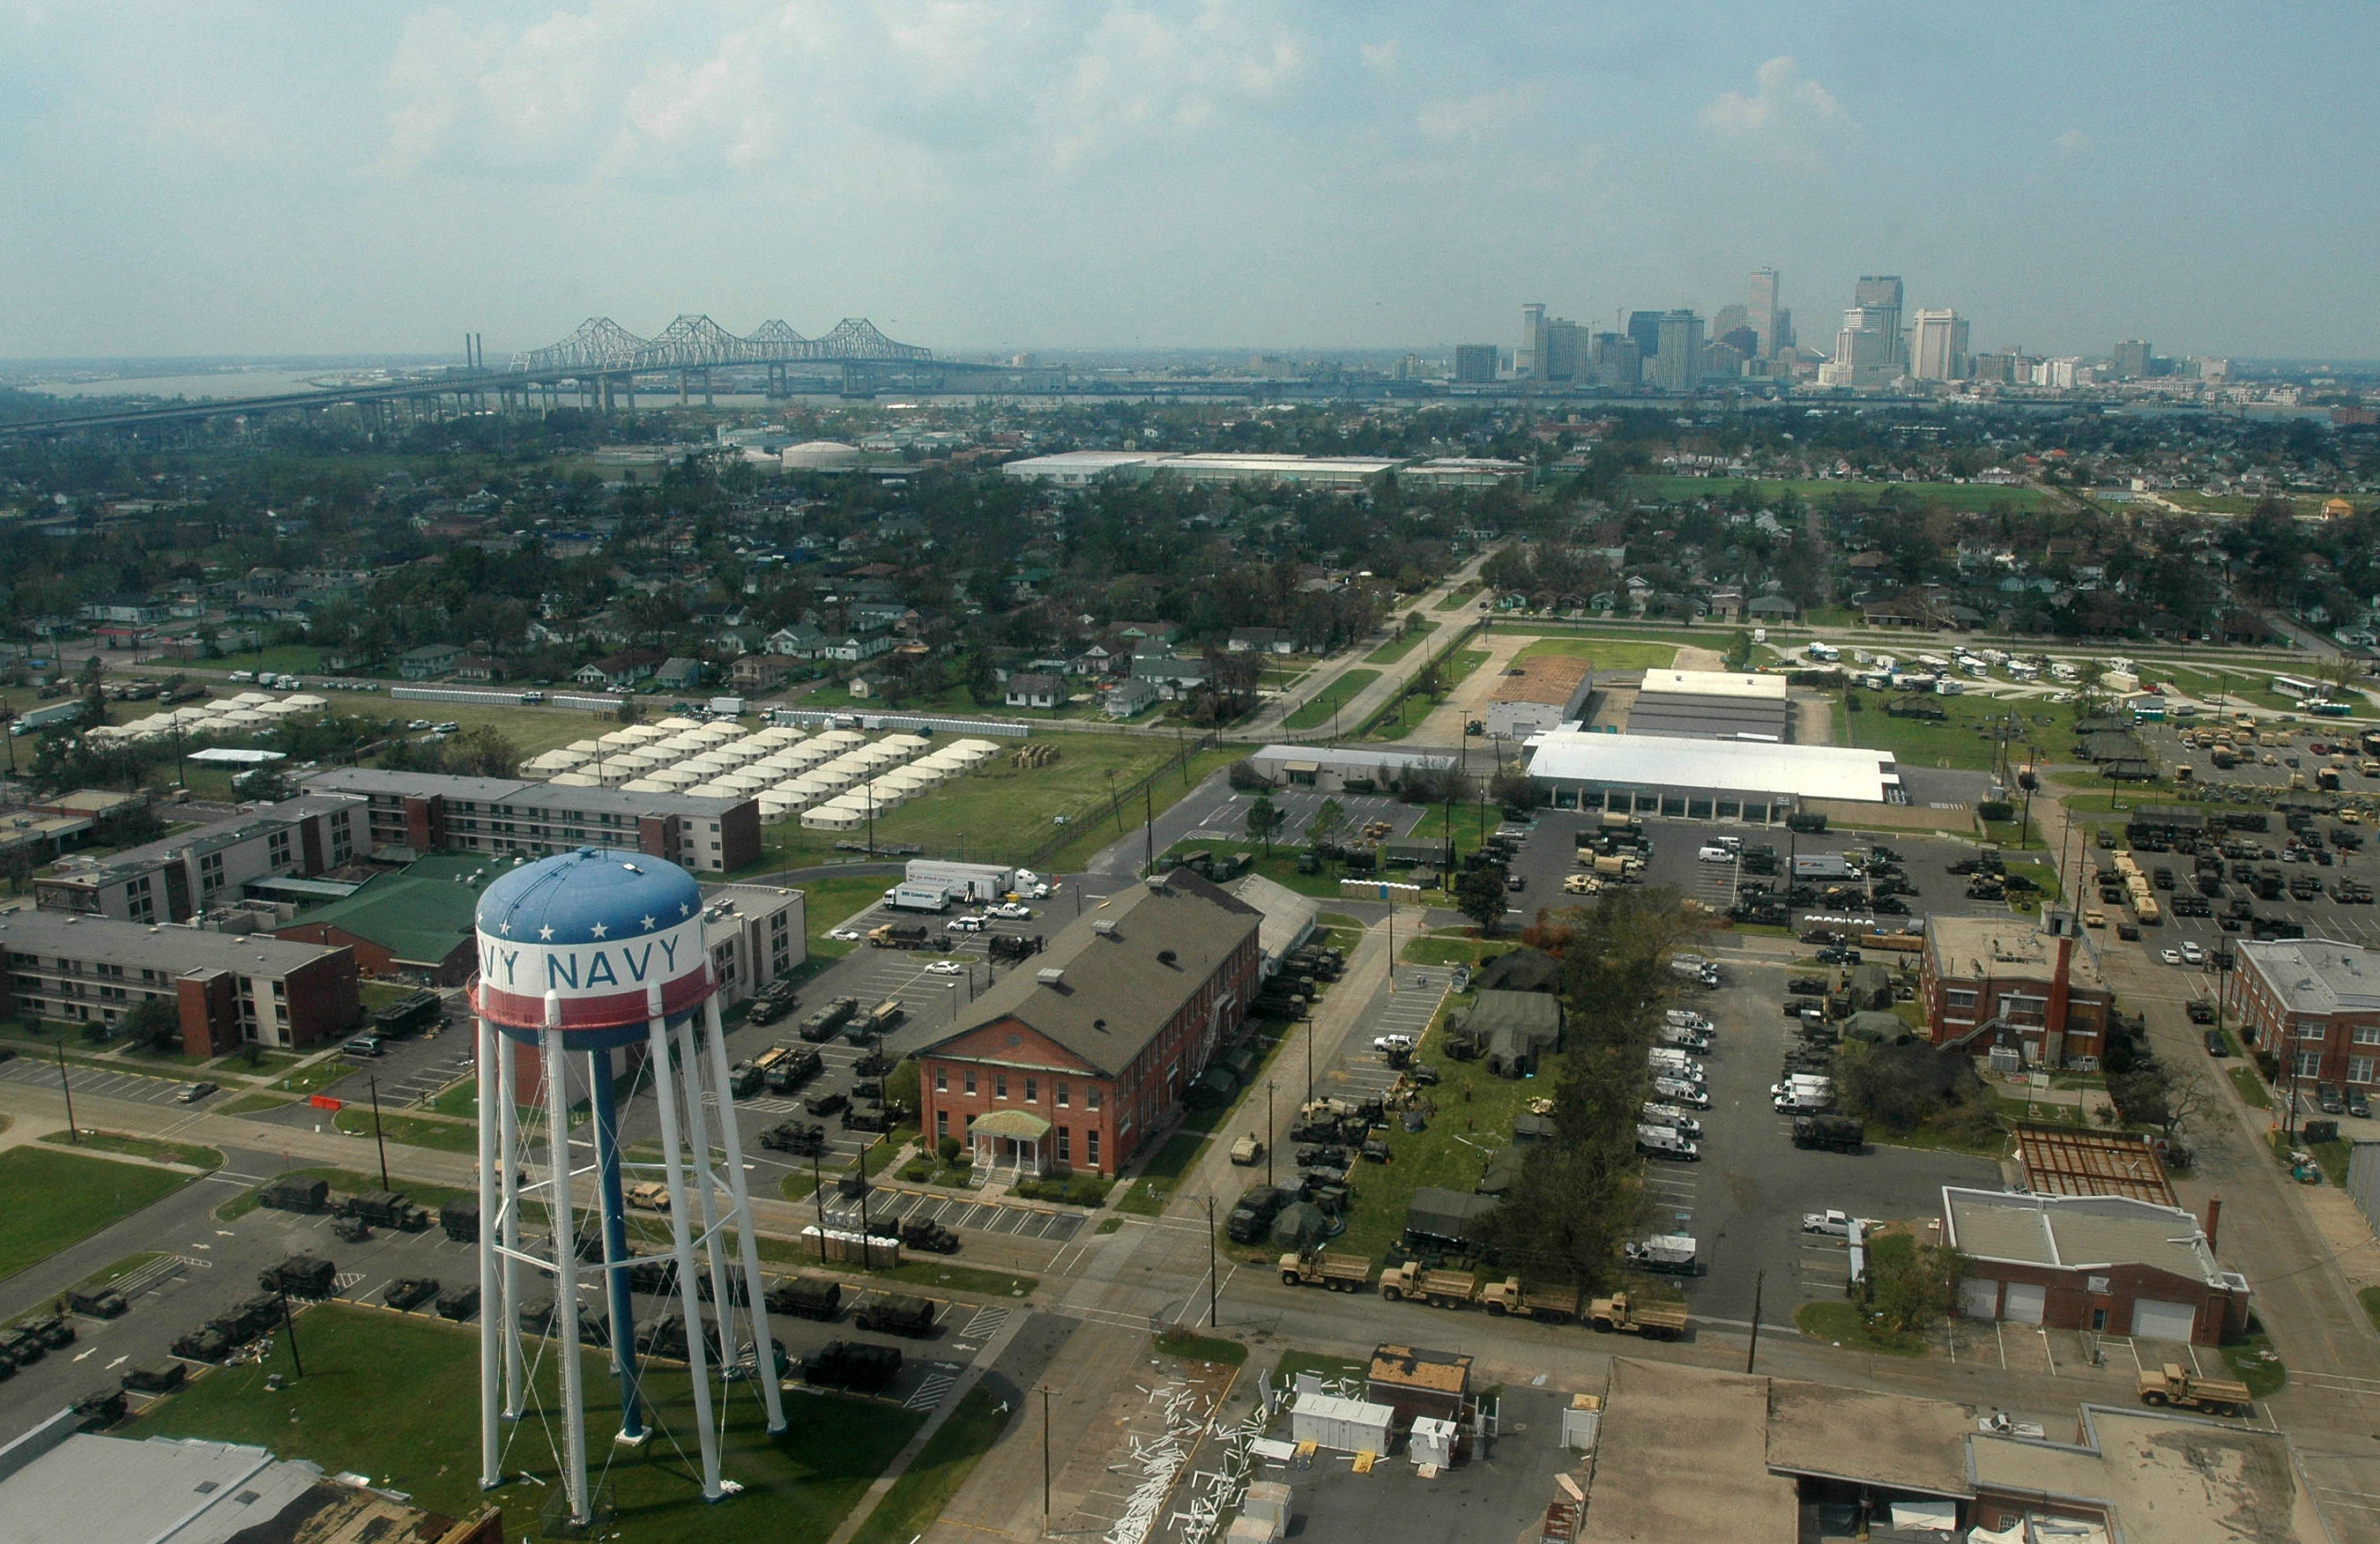 the controversies after hurricane katrina in new orleans Hurricane katrina was the most destructive natural disaster in us history it cost between $108 - $250 billion comparison to other hurricanes flooding in new orleans caused half the damage it destroyed or rendered uninhabitable 300,000 homes.